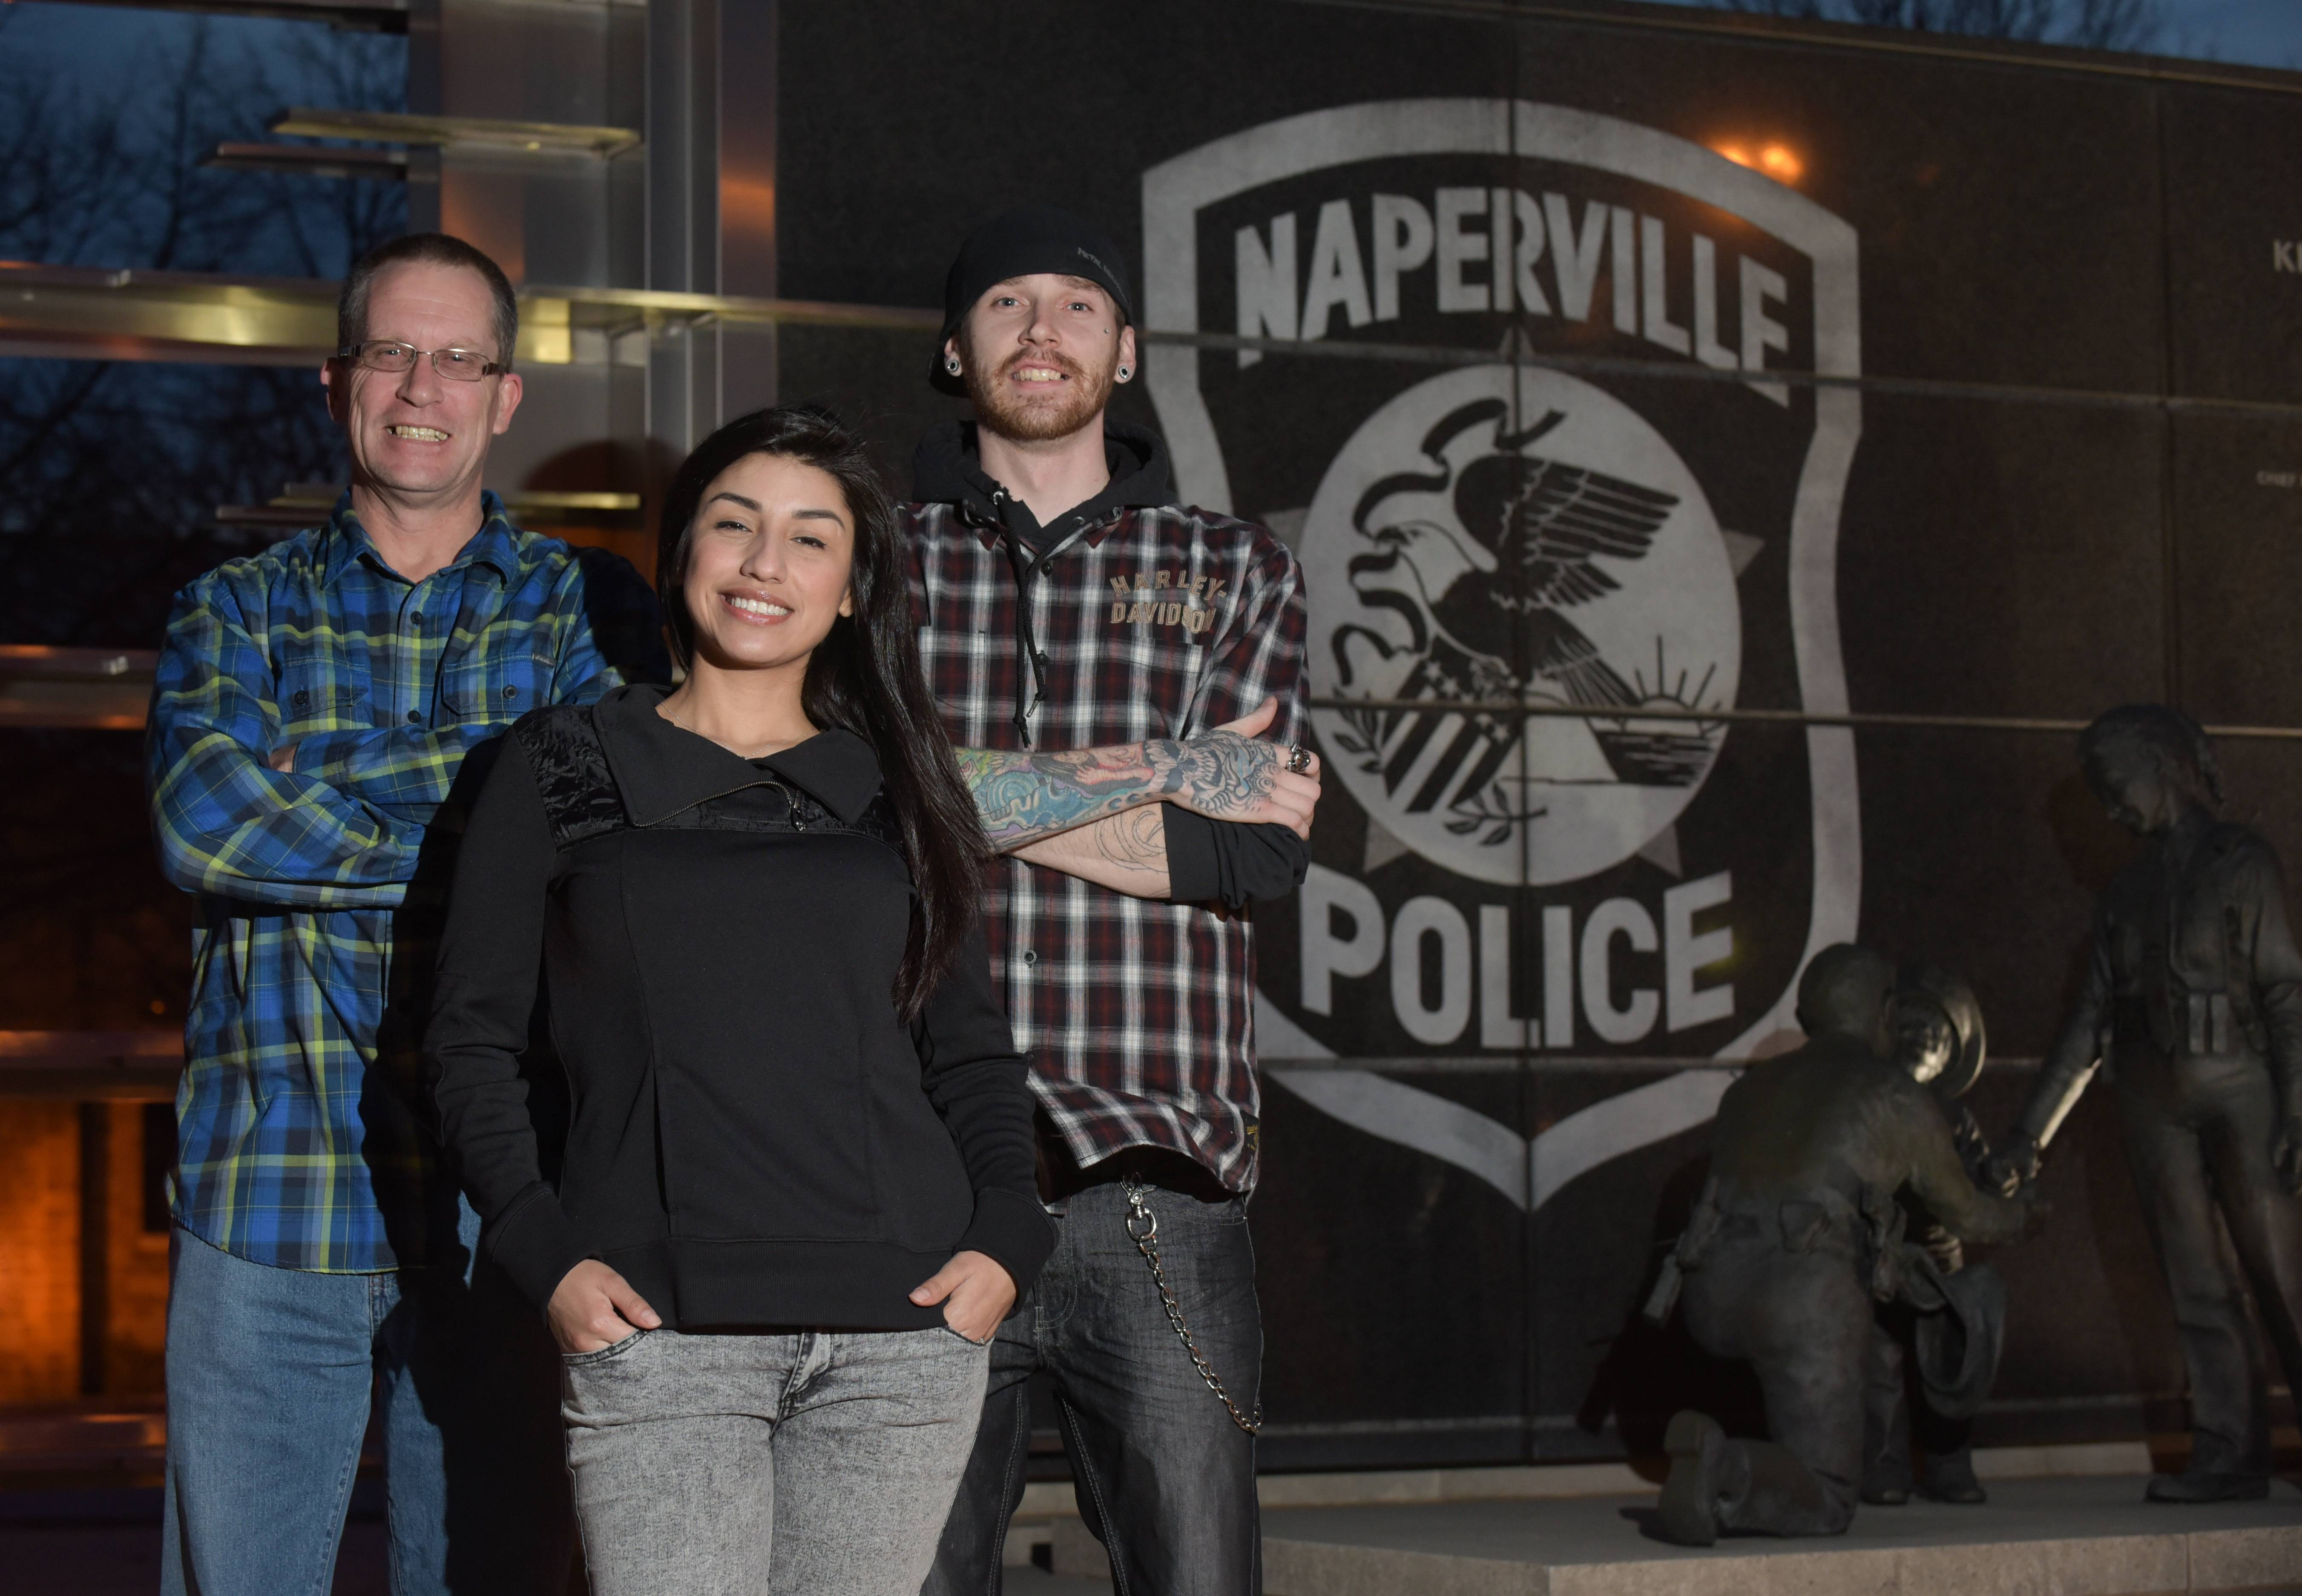 Tim Ryan, Jessica Alvarez and Brad Gerke are volunteer sobriety coaches in a Naperville police program launching today to connect heroin users to help and treatment.